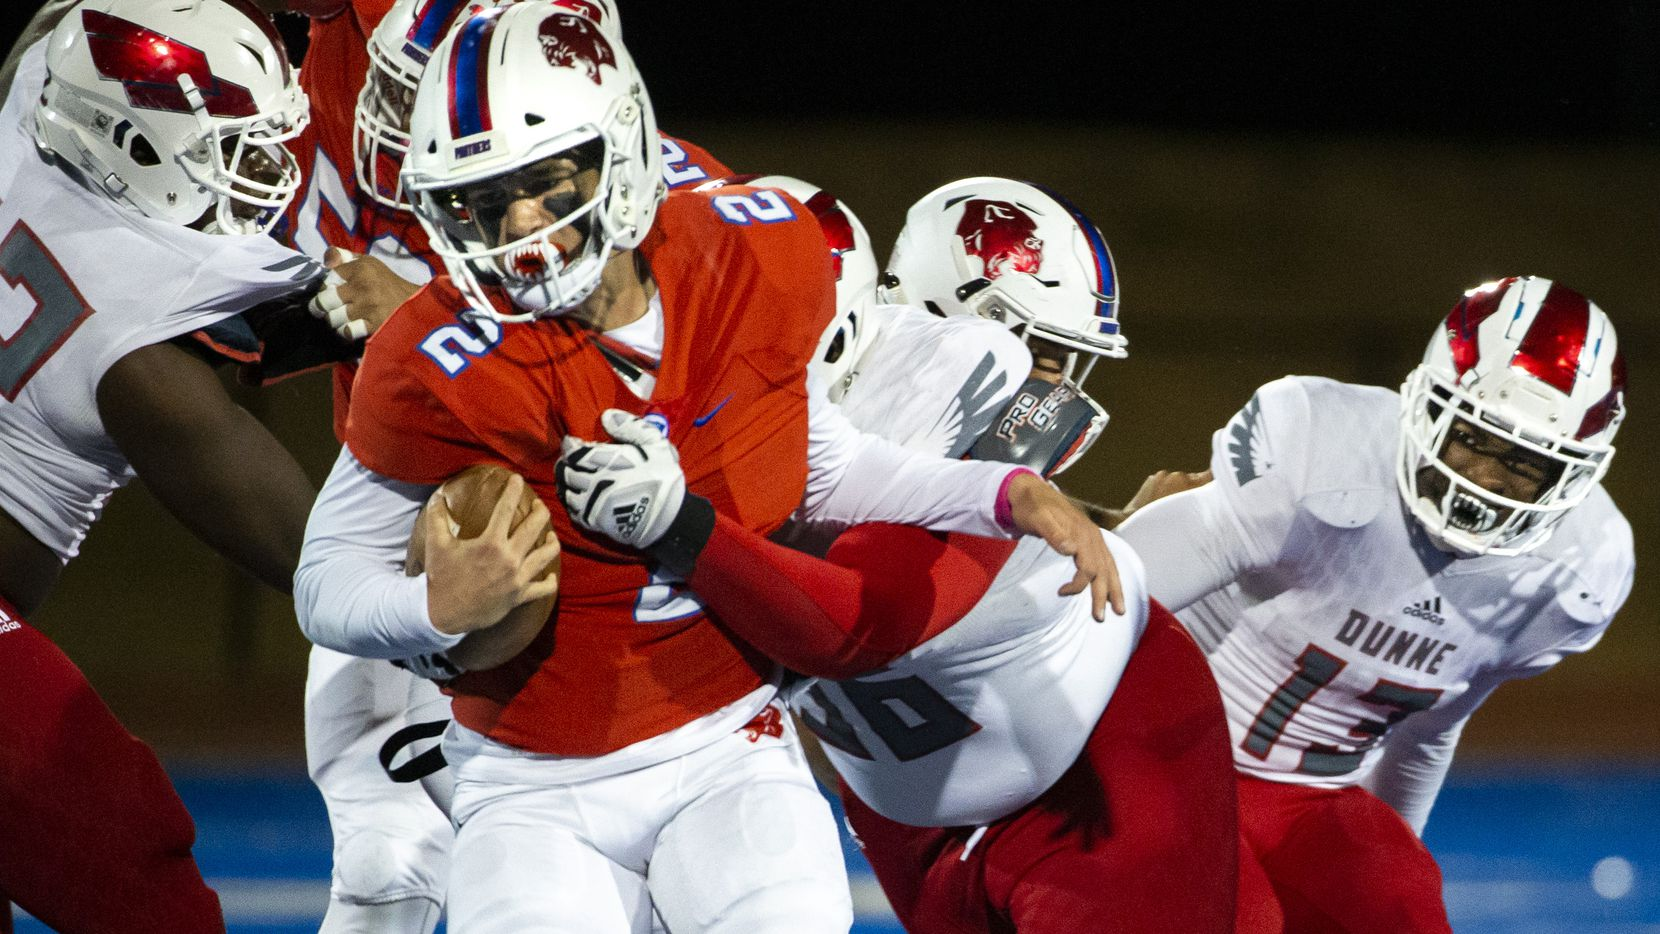 Parish Episcopal quarterback Preston Stone (2) gets taken down by Bishop Dunne defensive lineman Thomas Gort III (56) during the football game between Parish Episcopal High School and Bishop Dunne Catholic School at the Gloria H. Snyder Stadium in Farmers Branch, Texas, on Friday, Oct. 11, 2019.